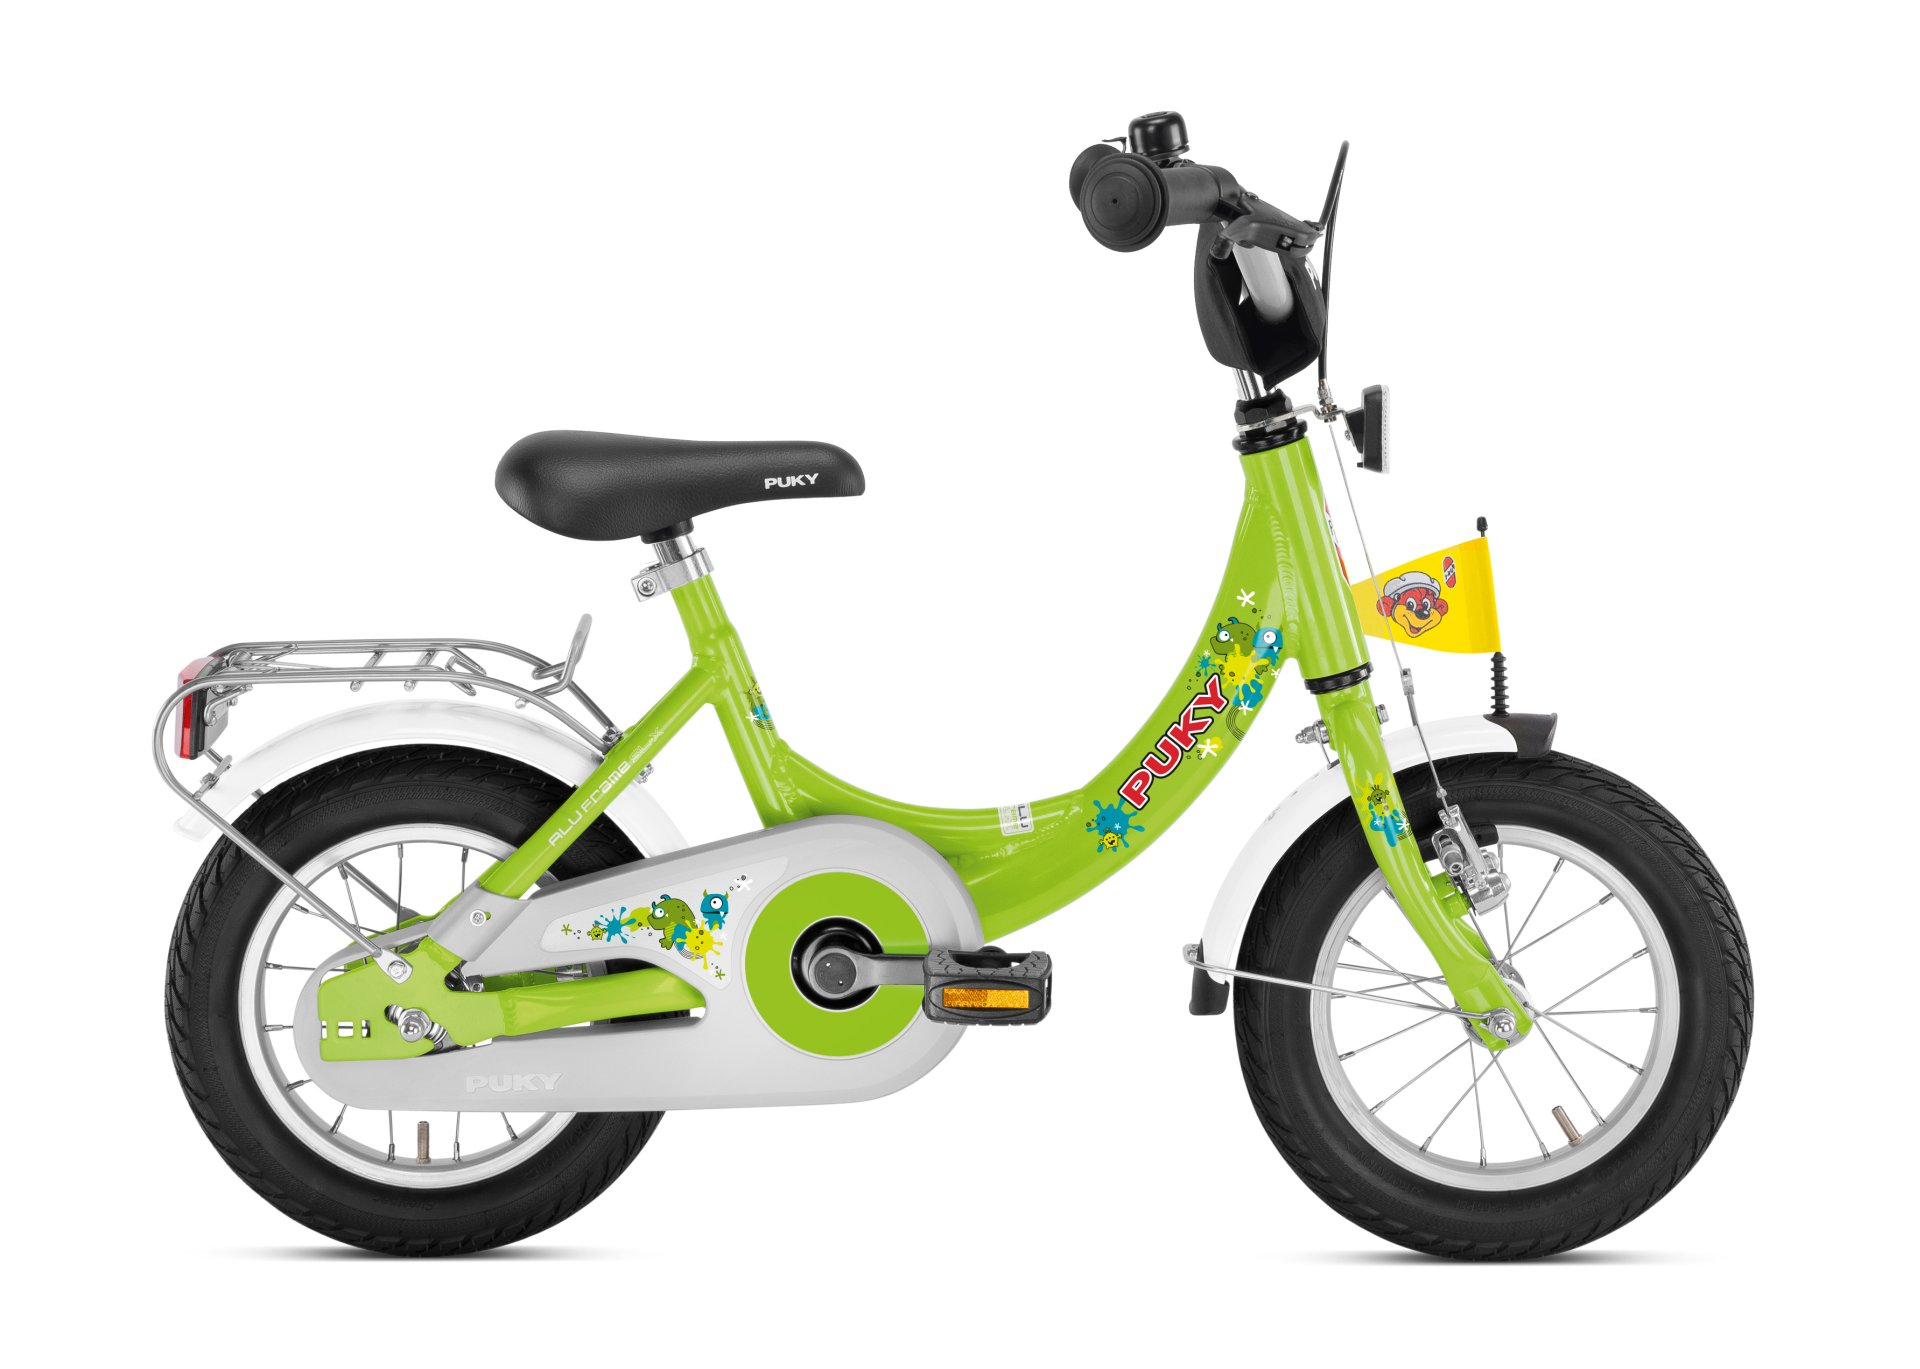 Puky Play Bicycle Zl 12 Alu 2017 Kiwi Buy At Kidsroom Toys